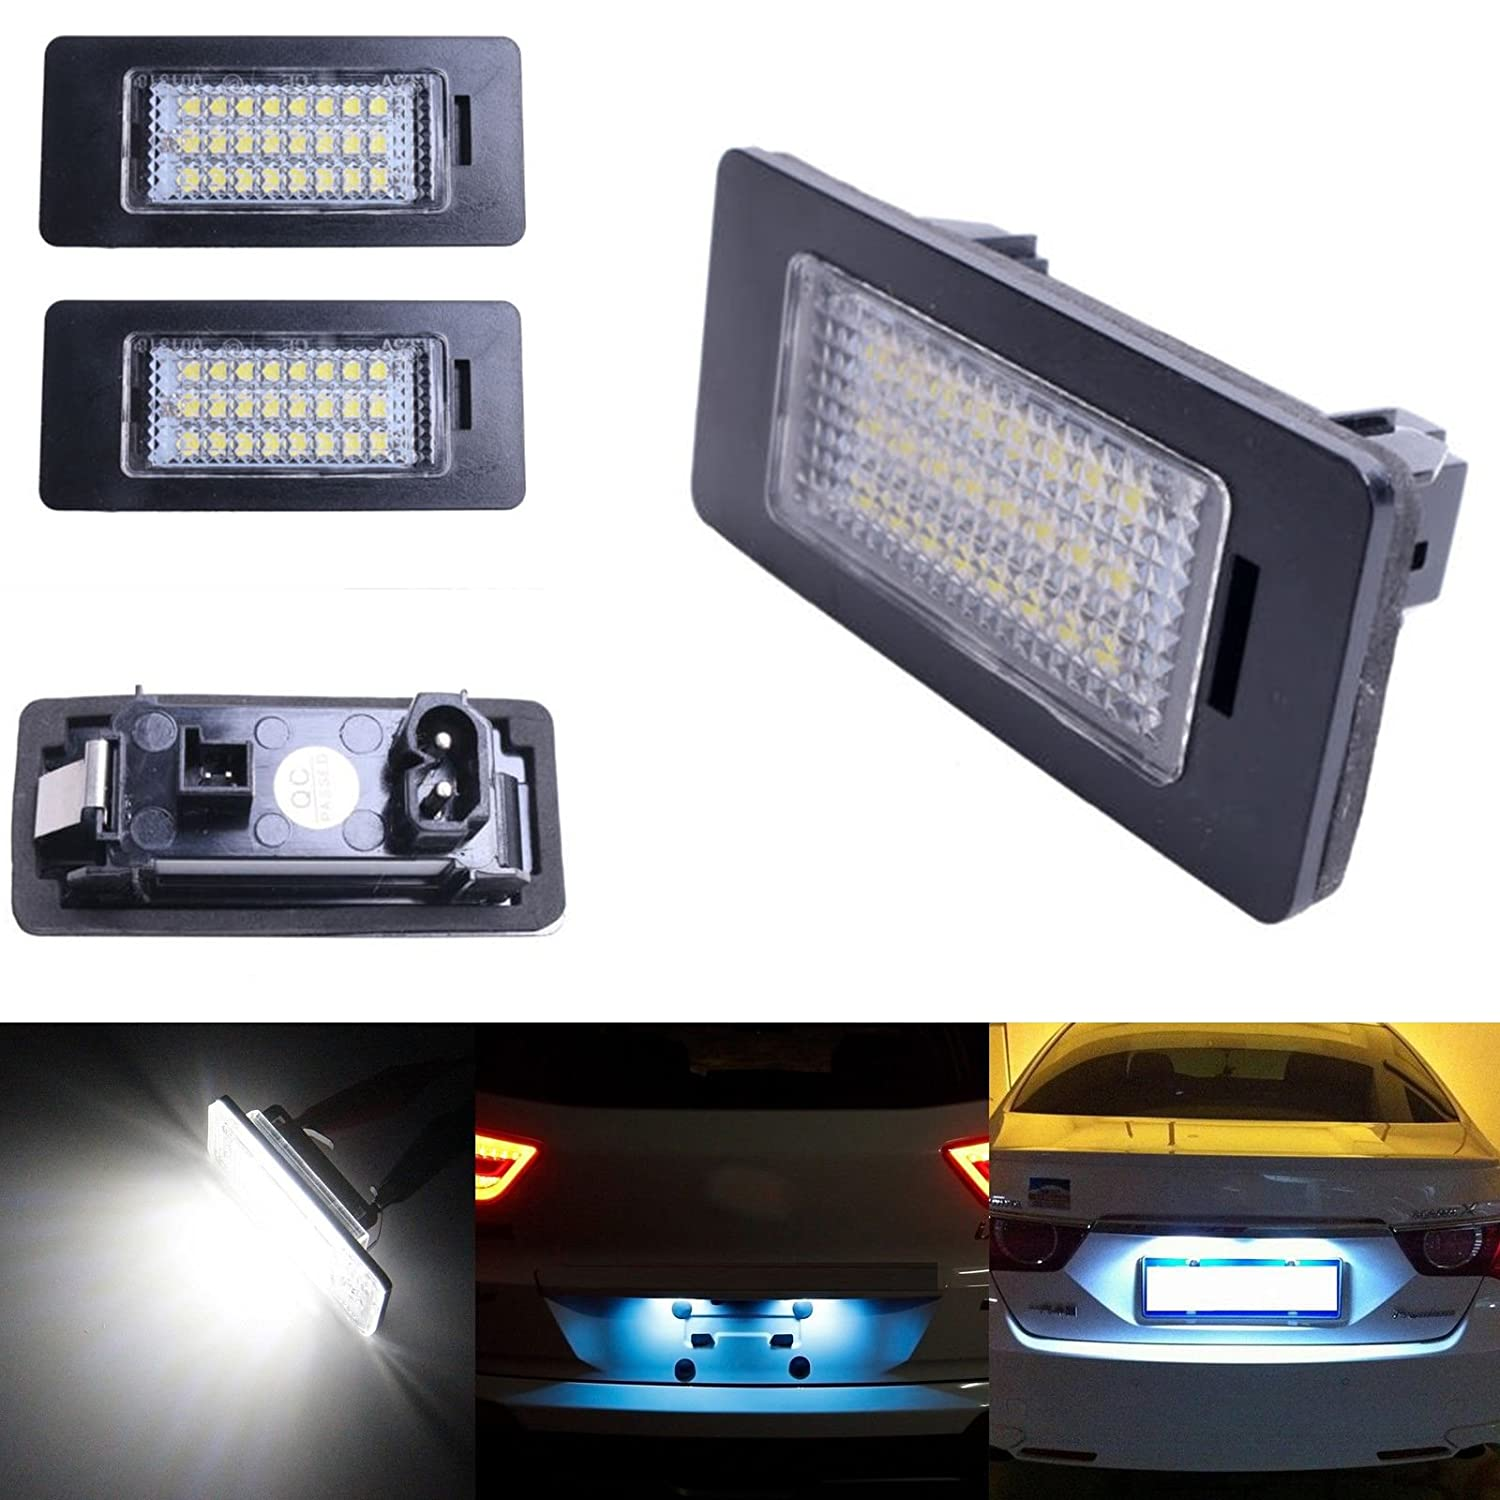 Ricoy 24 LED License Plate Number Lights For E81 E82 E90 M3 E92 E70 E39 F30 E60 E61 E93 6000K (Pack of 2)